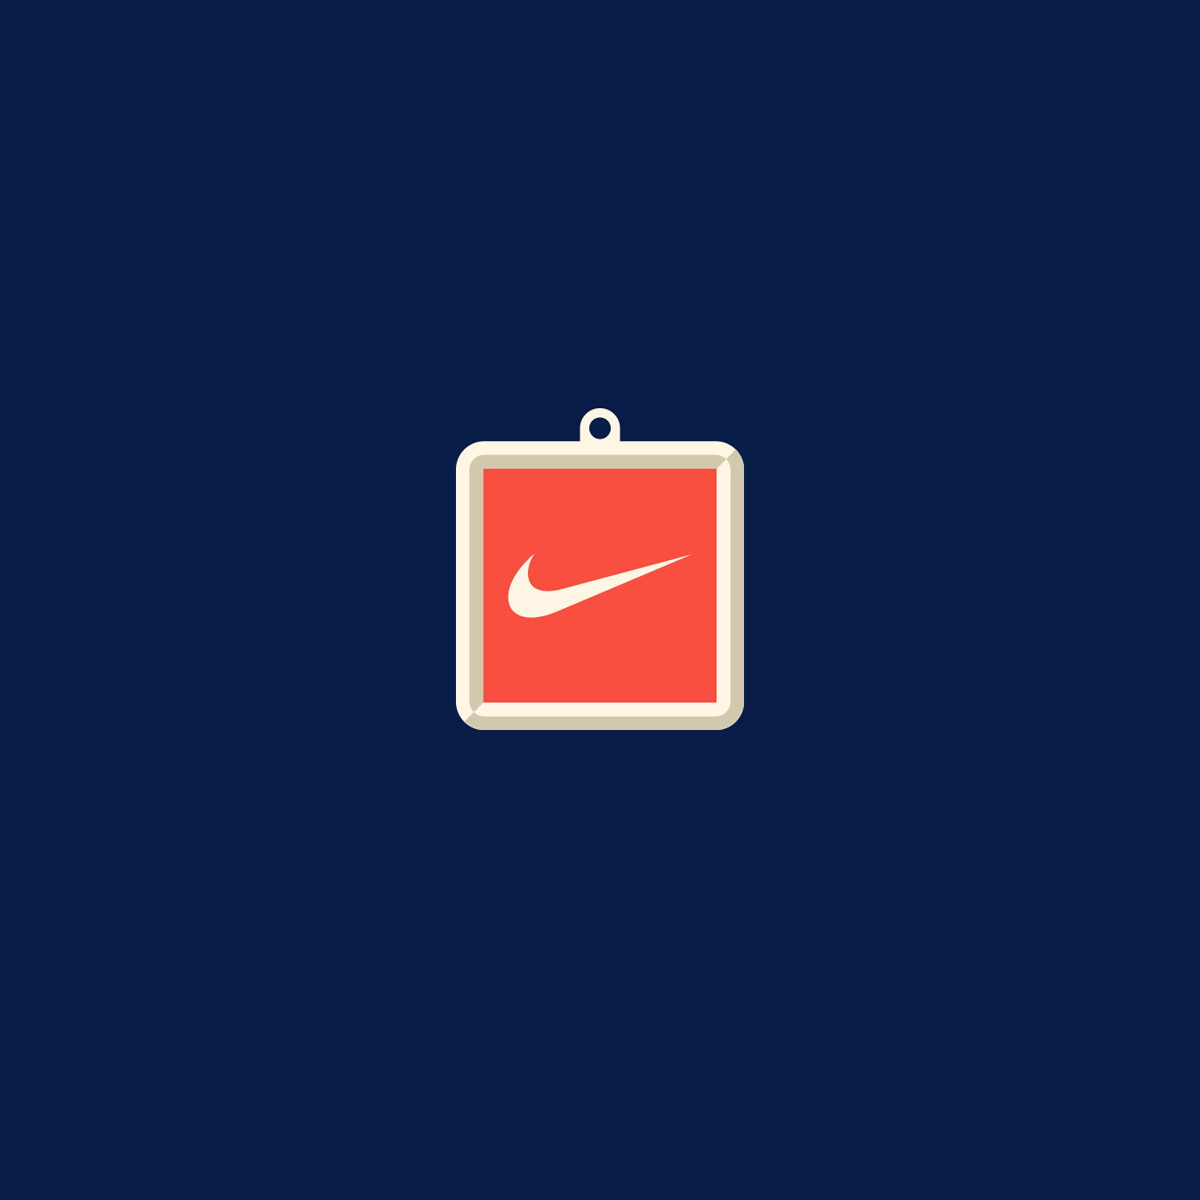 Nike Hang Tag Illustration